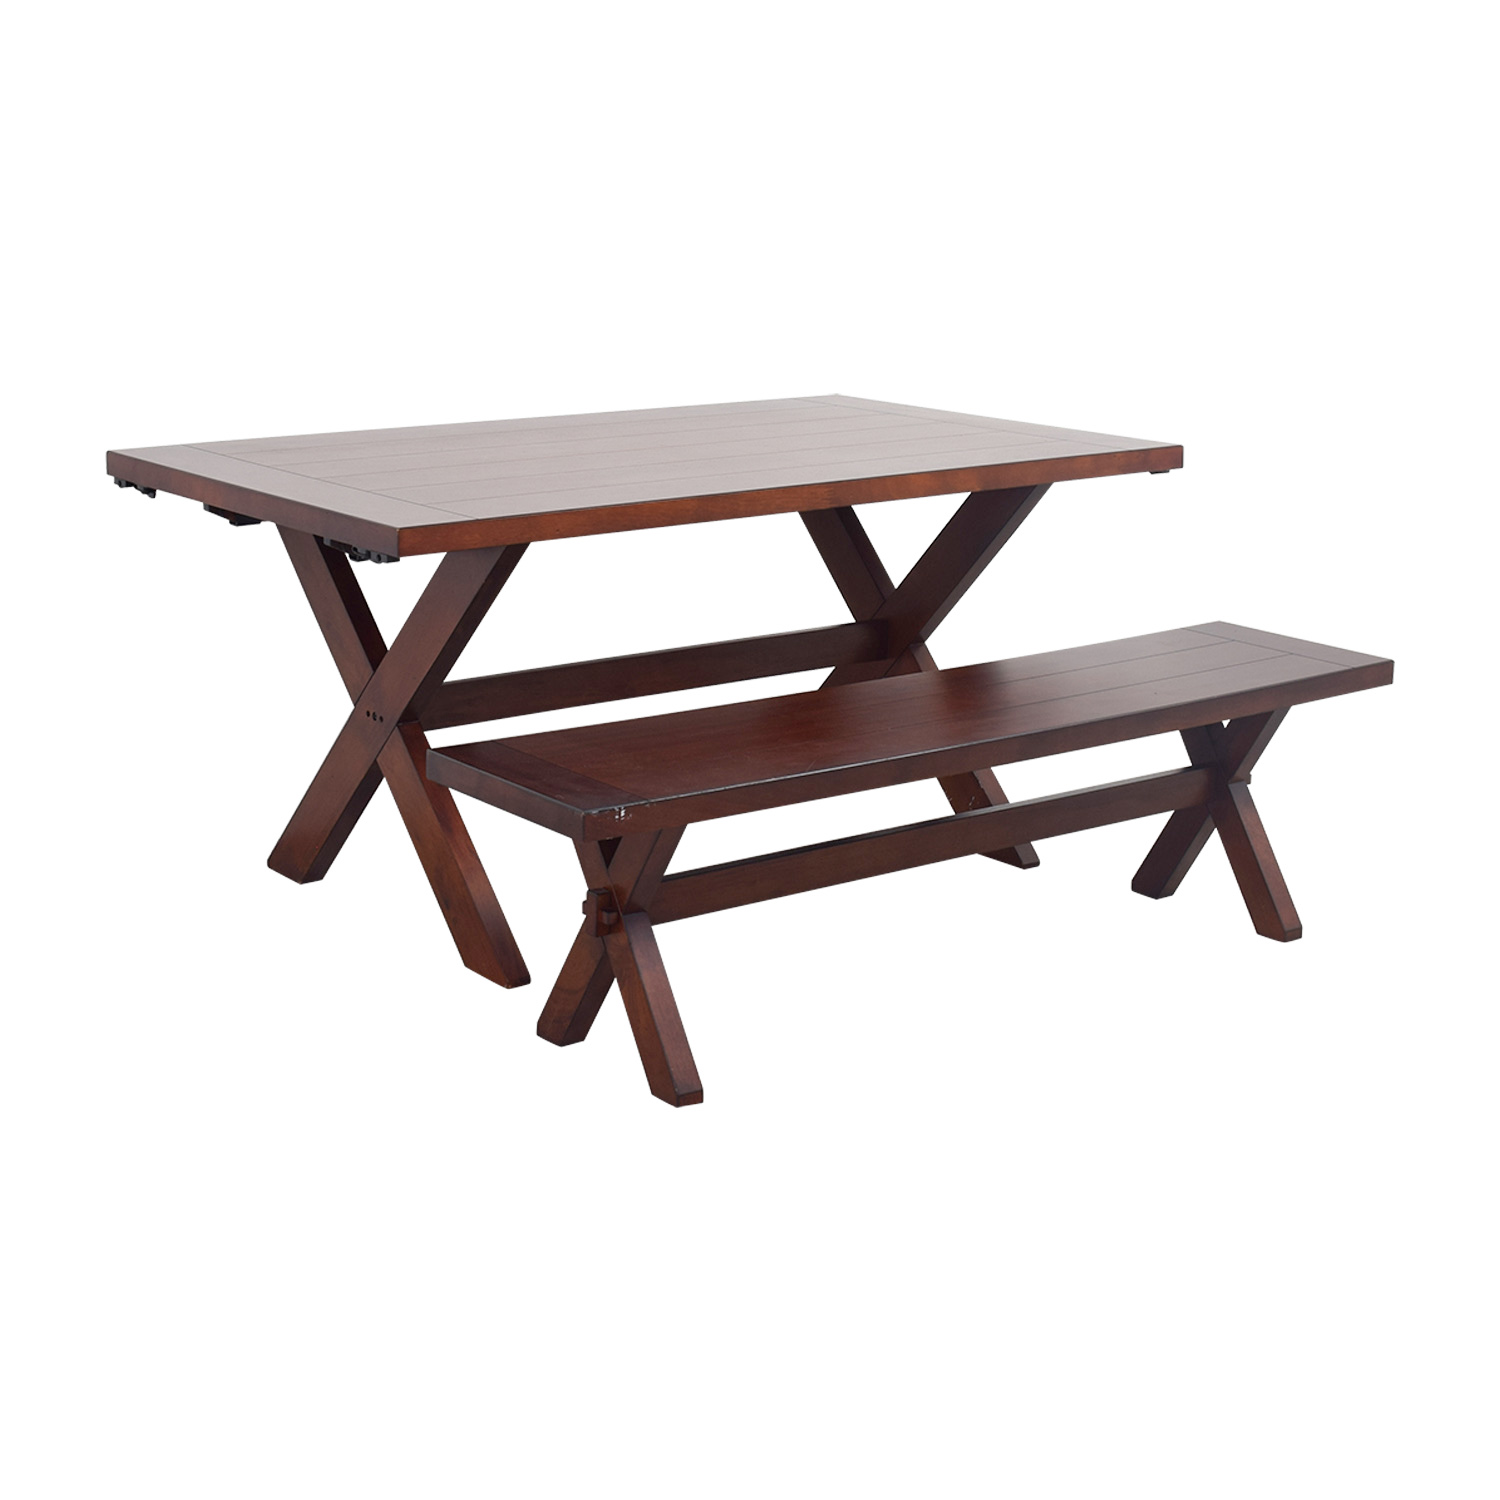 Pier One Bench: Pier 1 Imports Pier 1 Imports Nolan Wood Dining